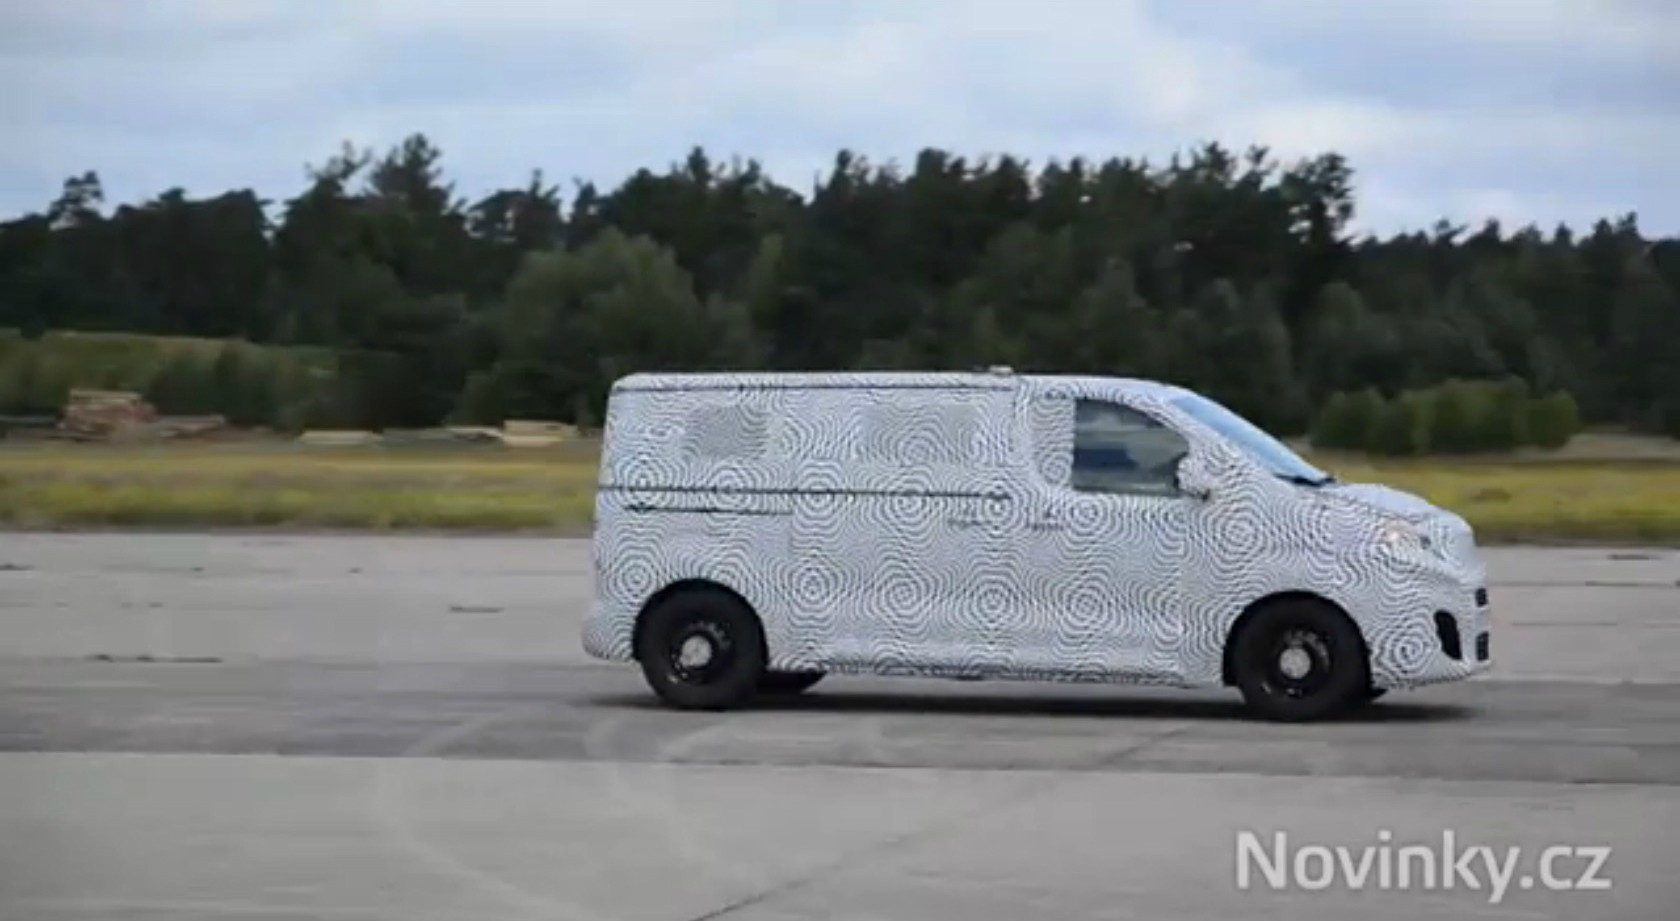 Skoda Van Spied During Testing, It's Based On the New Volkswagen Transporter T6 - autoevolution